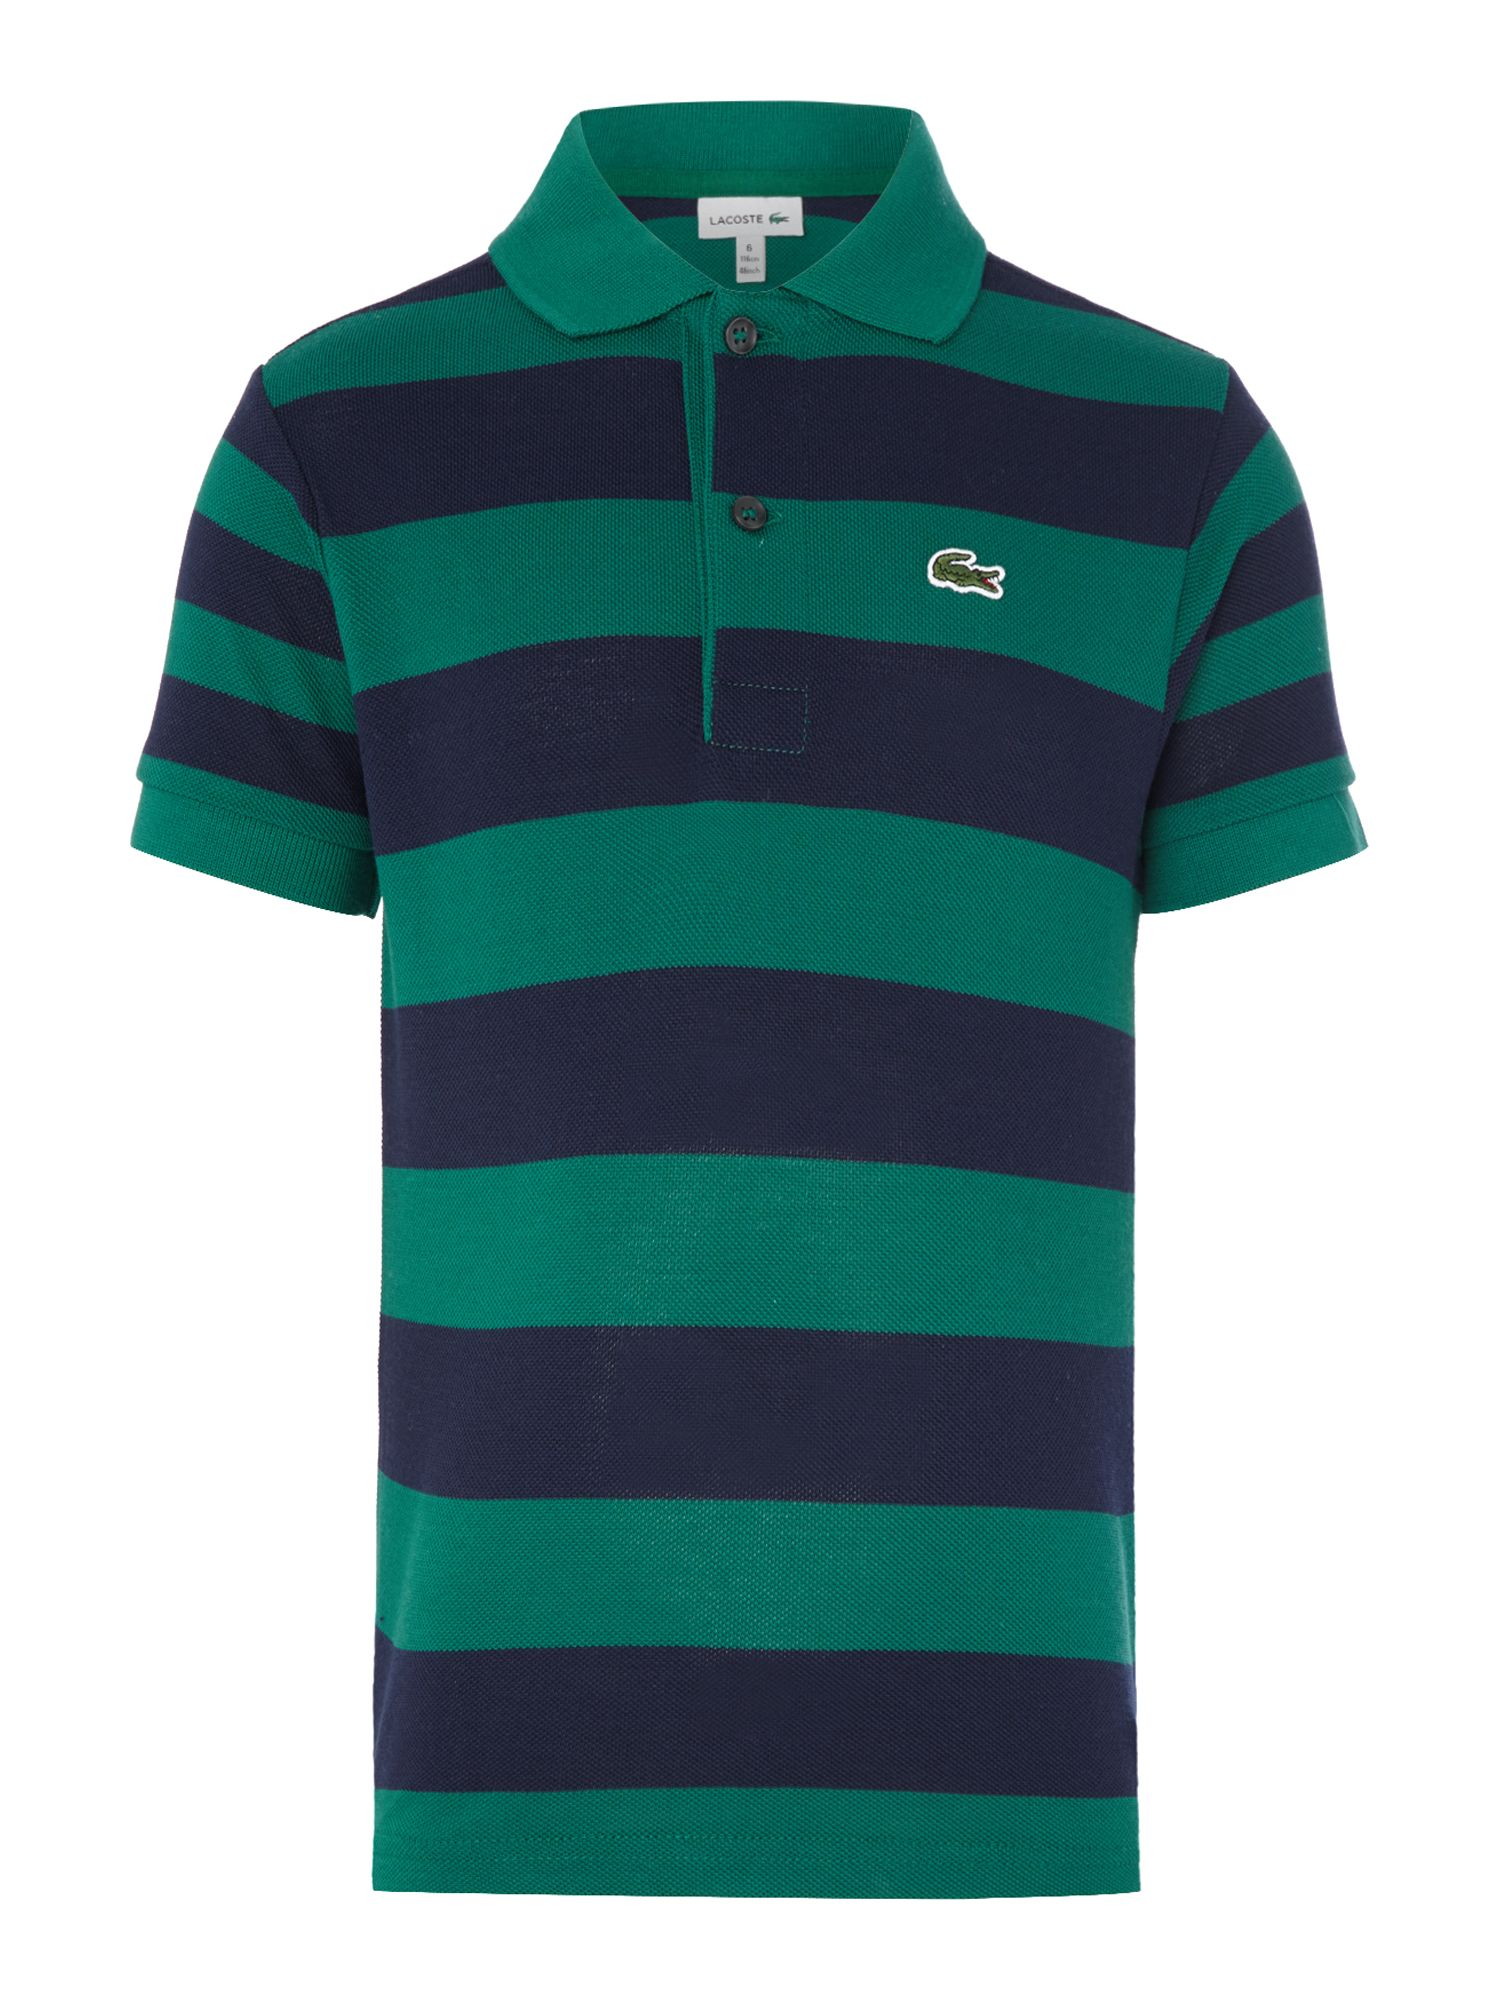 Boys striped polo shirt house of fraser for Boys striped polo shirts